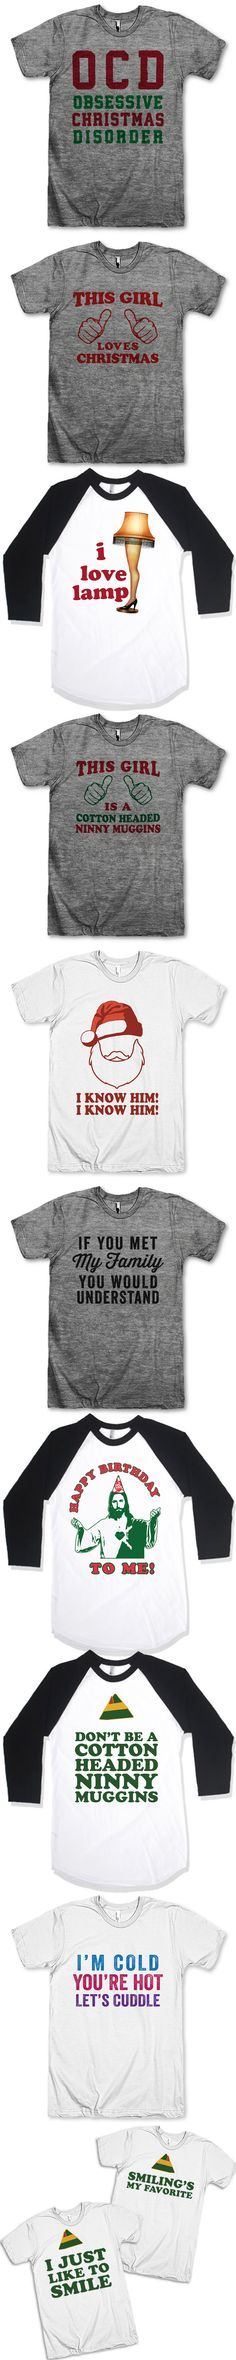 + 11 Christmas T-Shirts You're Going To Want To Self Gift + Our Chistmas Shirts are perfect for giving yourself a present, and even more perfect to share with your BFF! We've got TONS of matching shirts, and lots of funny and sarcastic tees for everyone! Check out T Shirts From Your Favorite Movies, or one of our other collections like Couples shirts and Fitspo Tees. We've got Fresh Designs for Funny T Shirts that are guaranteed to make you Laugh Out Loud! :-) Awesome Best Friends Tees!